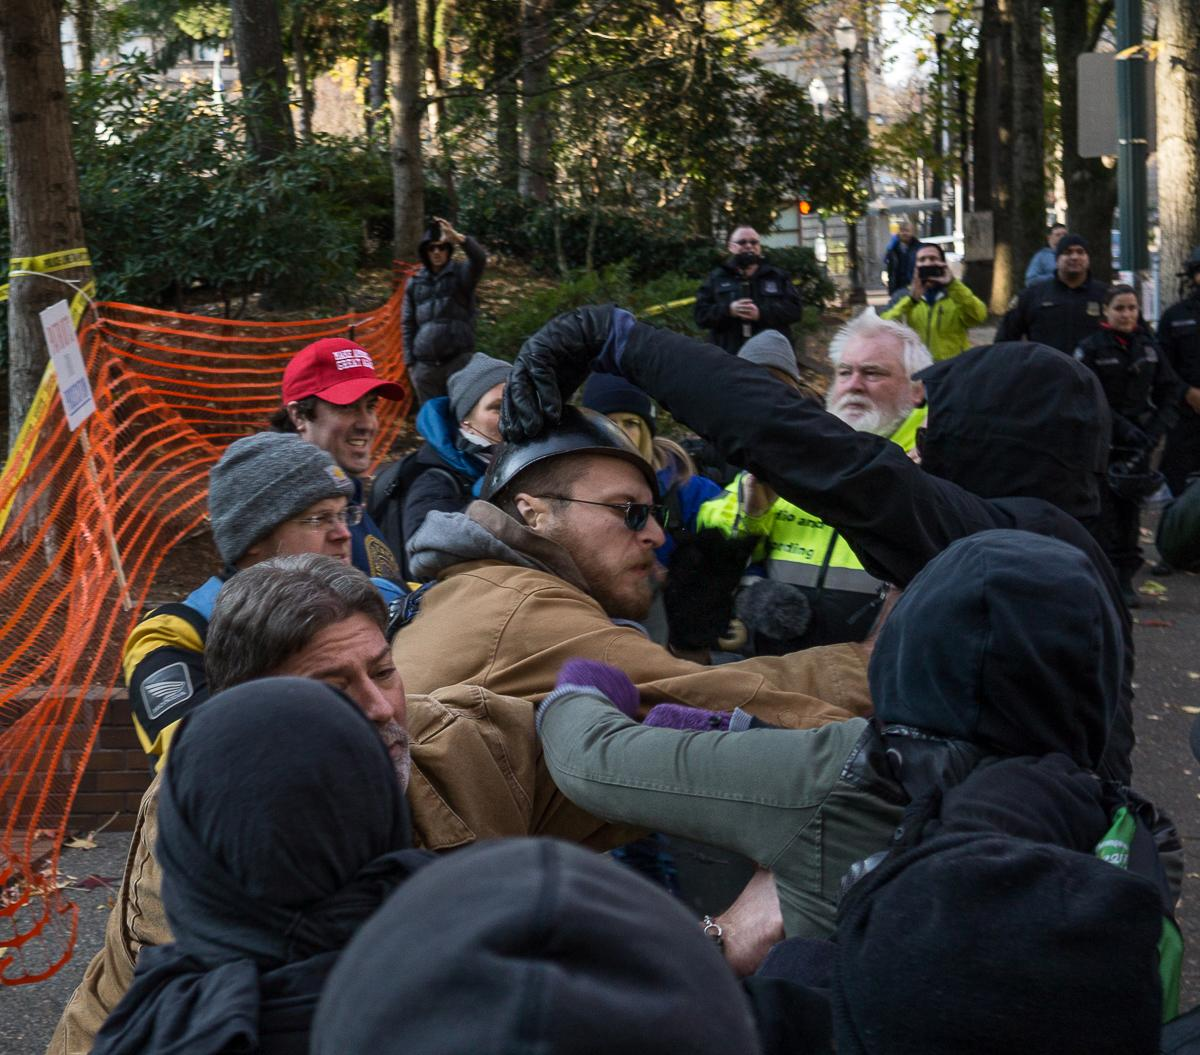 One of several brief fights erupts between members of Patriot Prayer and masked counter-protesters. A demonstration by the alt-right, conservative group Patriot Prayer began at 1 p.m. in Portland, Ore., on Saturday, December 9, to protest the homicide acquittal of Jose Ines Garcia Zarate, the undocumented immigrant who accidentally shot and killed Kate Steinle in San Francisco. The demonstration attracted a large crowd of counter-protesters and members of Antifa, and heated exchanges and several scuffles occurred between the two groups throughout the afternoon until the event's conclusion at 4 p.m., with at least one member of Patriot Prayer being detained by police and several demonstrators being injured. The rally began in Portland's Terry Schrunk Plaza and developed into a march along the Tom McCall Waterfront Park before ending at Terry Schrunk Plaza again. Photo by Kit MacAvoy, Oregon News Lab